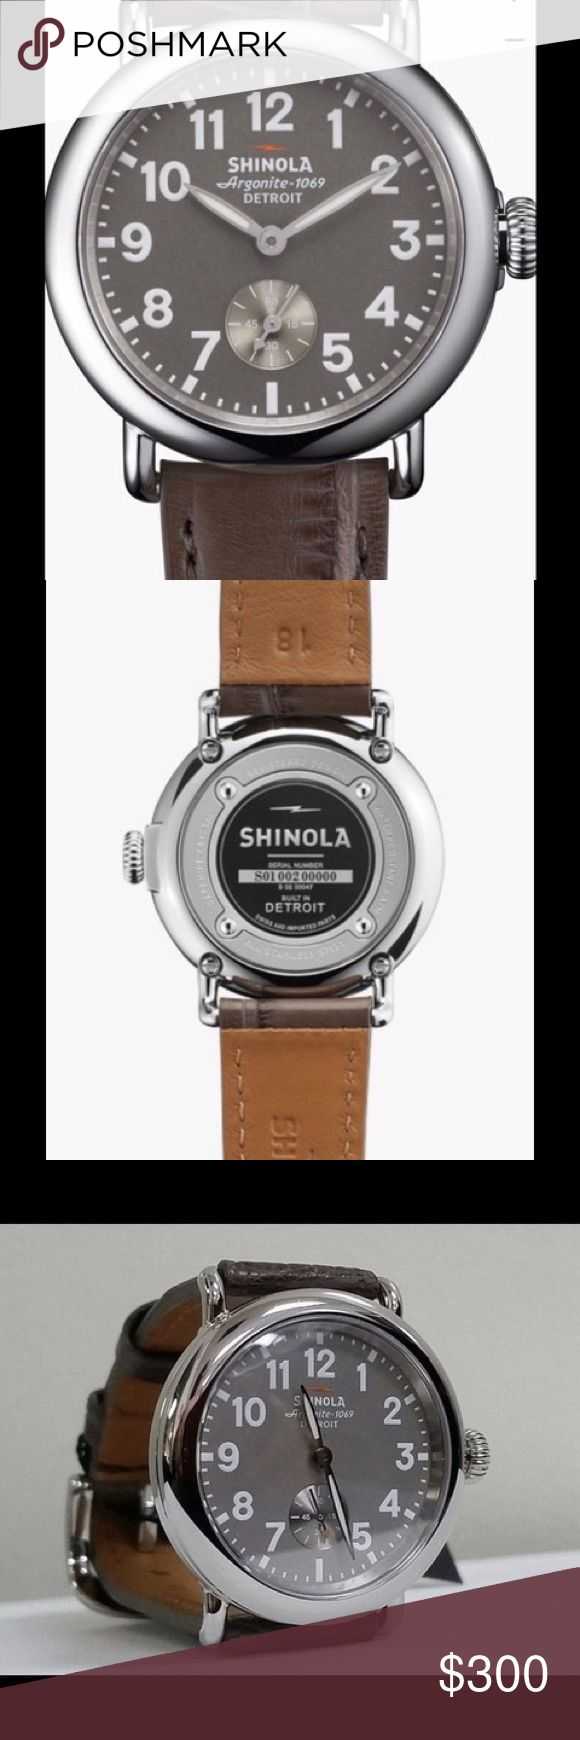 "Shinola Runwell 36mm Watch Alligator Leather Strap 2 DAY SALE ! Made by hand with the desire to craft the finest watches with the choicest materials—the Shinola Runwell watch collection boasts American-made movement with Swiss parts. Featuring a classic field watch design with a sleek, round dial and bold numerals—the Runwell artistically defines the Shinola mantra, ""Where American is made."" Shinola Accessories Watches"